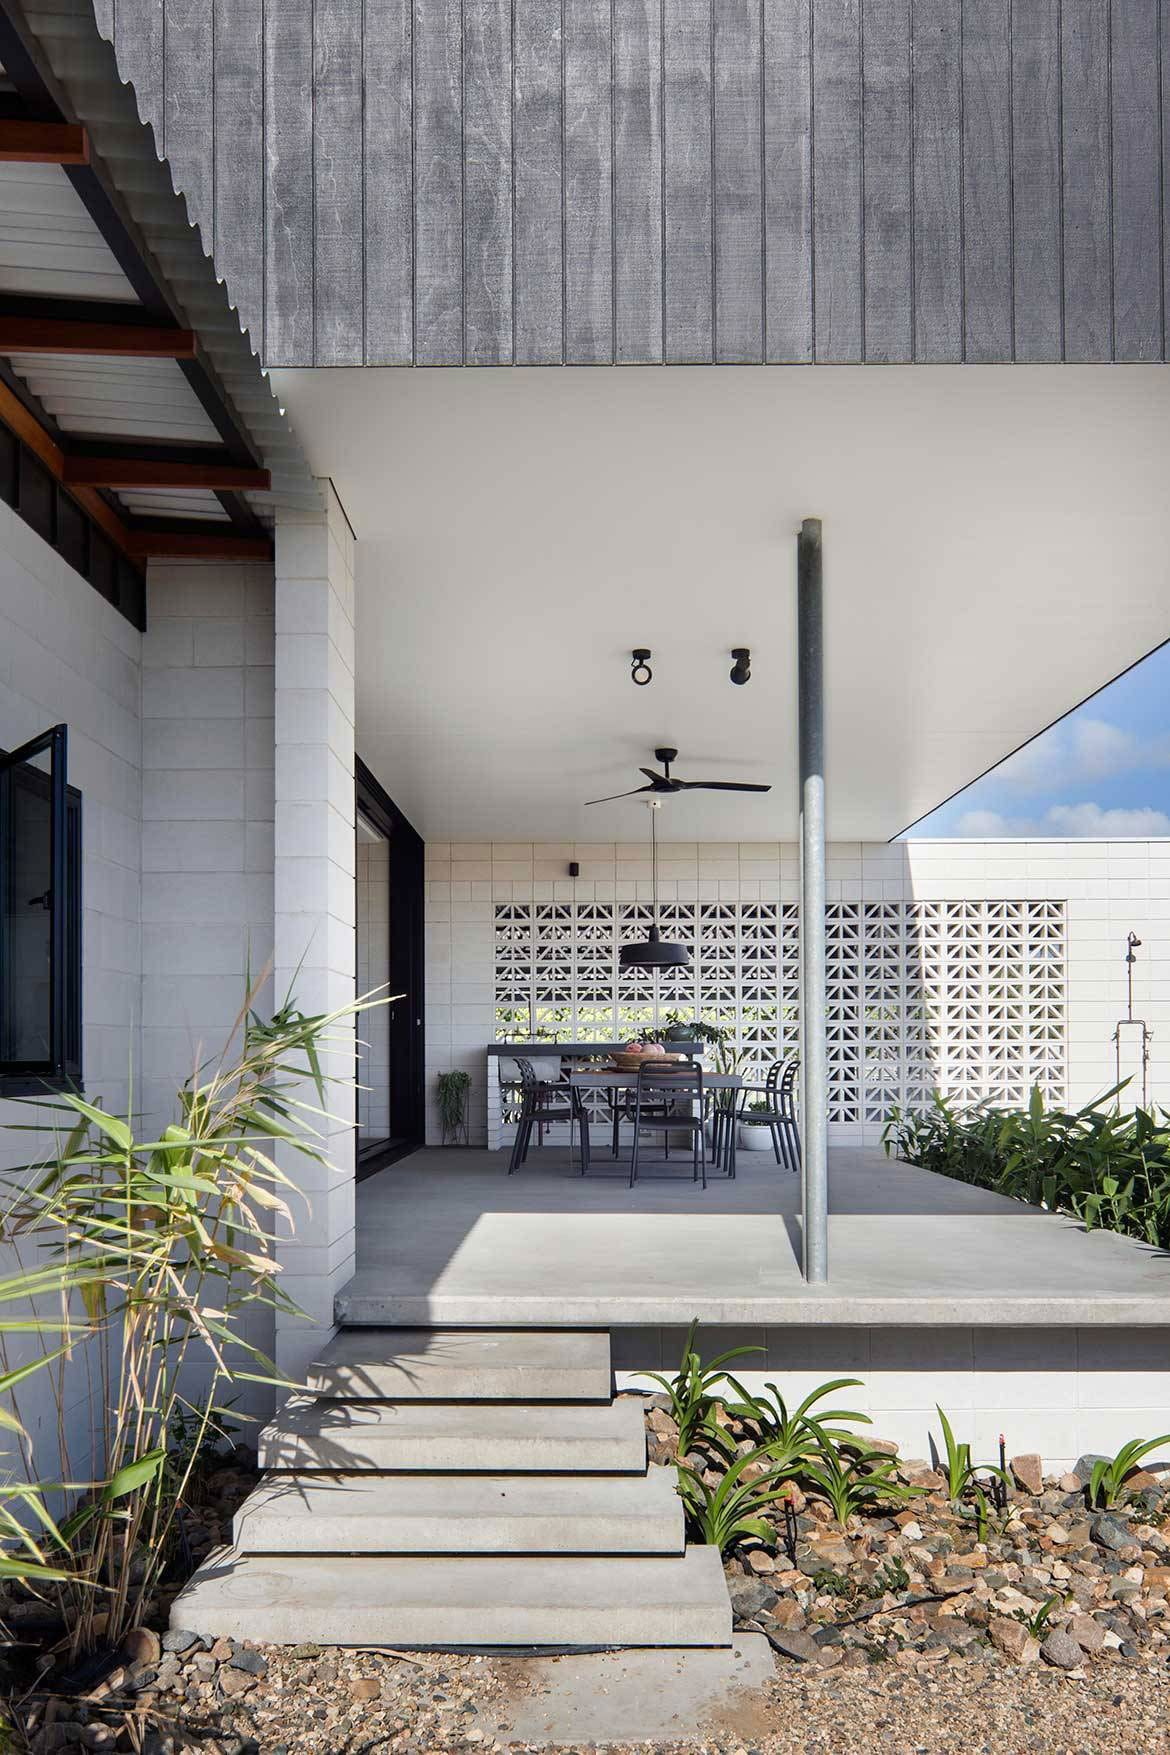 Inverdon House in Bowen, Australia by Chloe Naughton | Yellowtrace